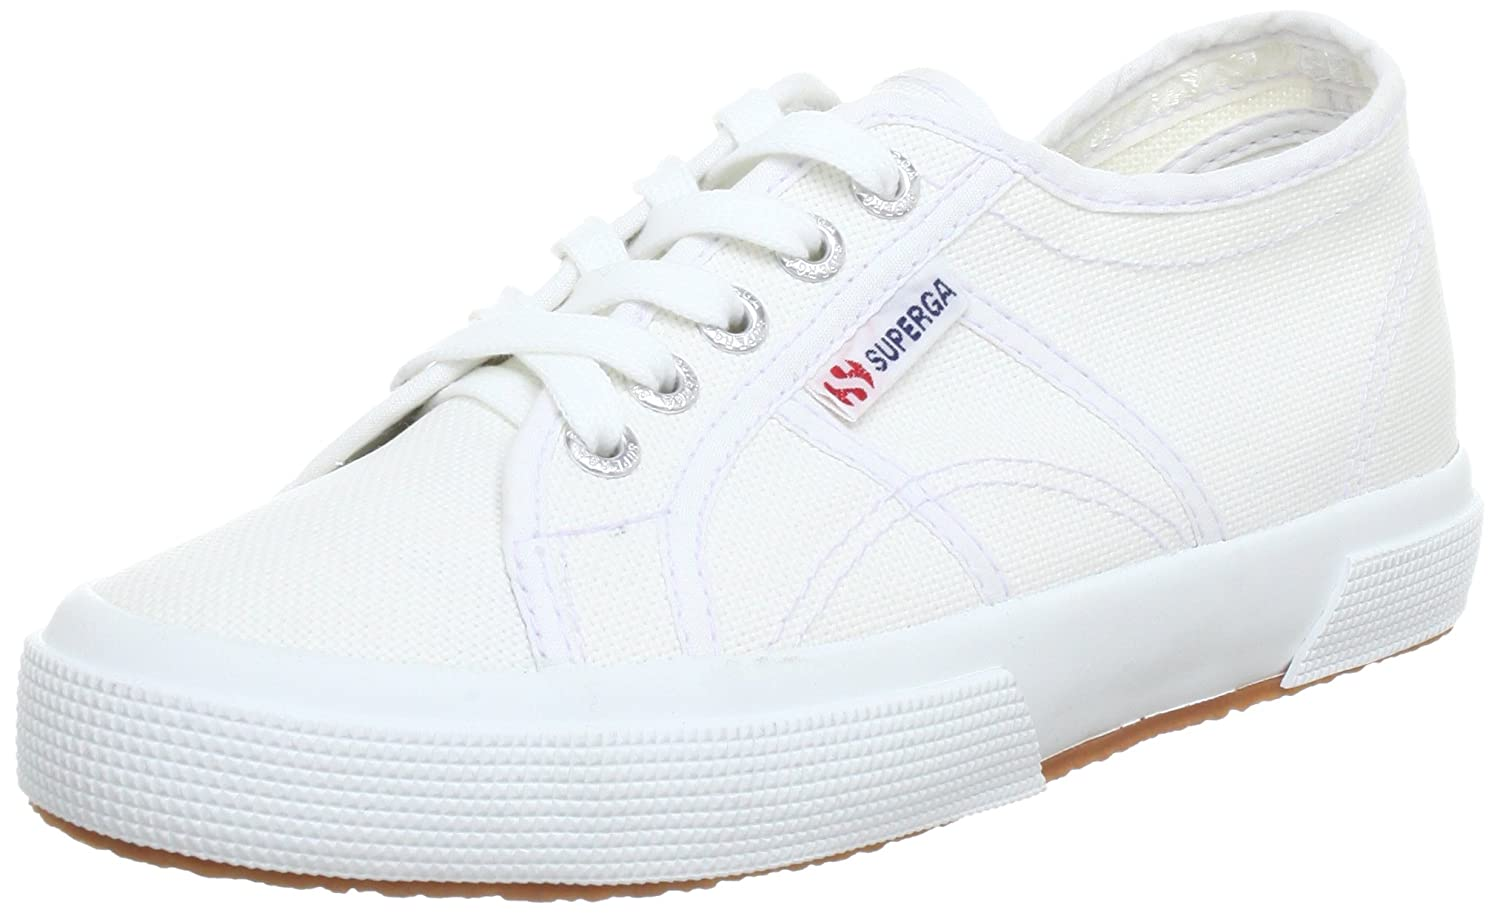 Superga 2750 COTU Classic, Zapatillas Unisex Adulto 43 EU|Blanco (White)